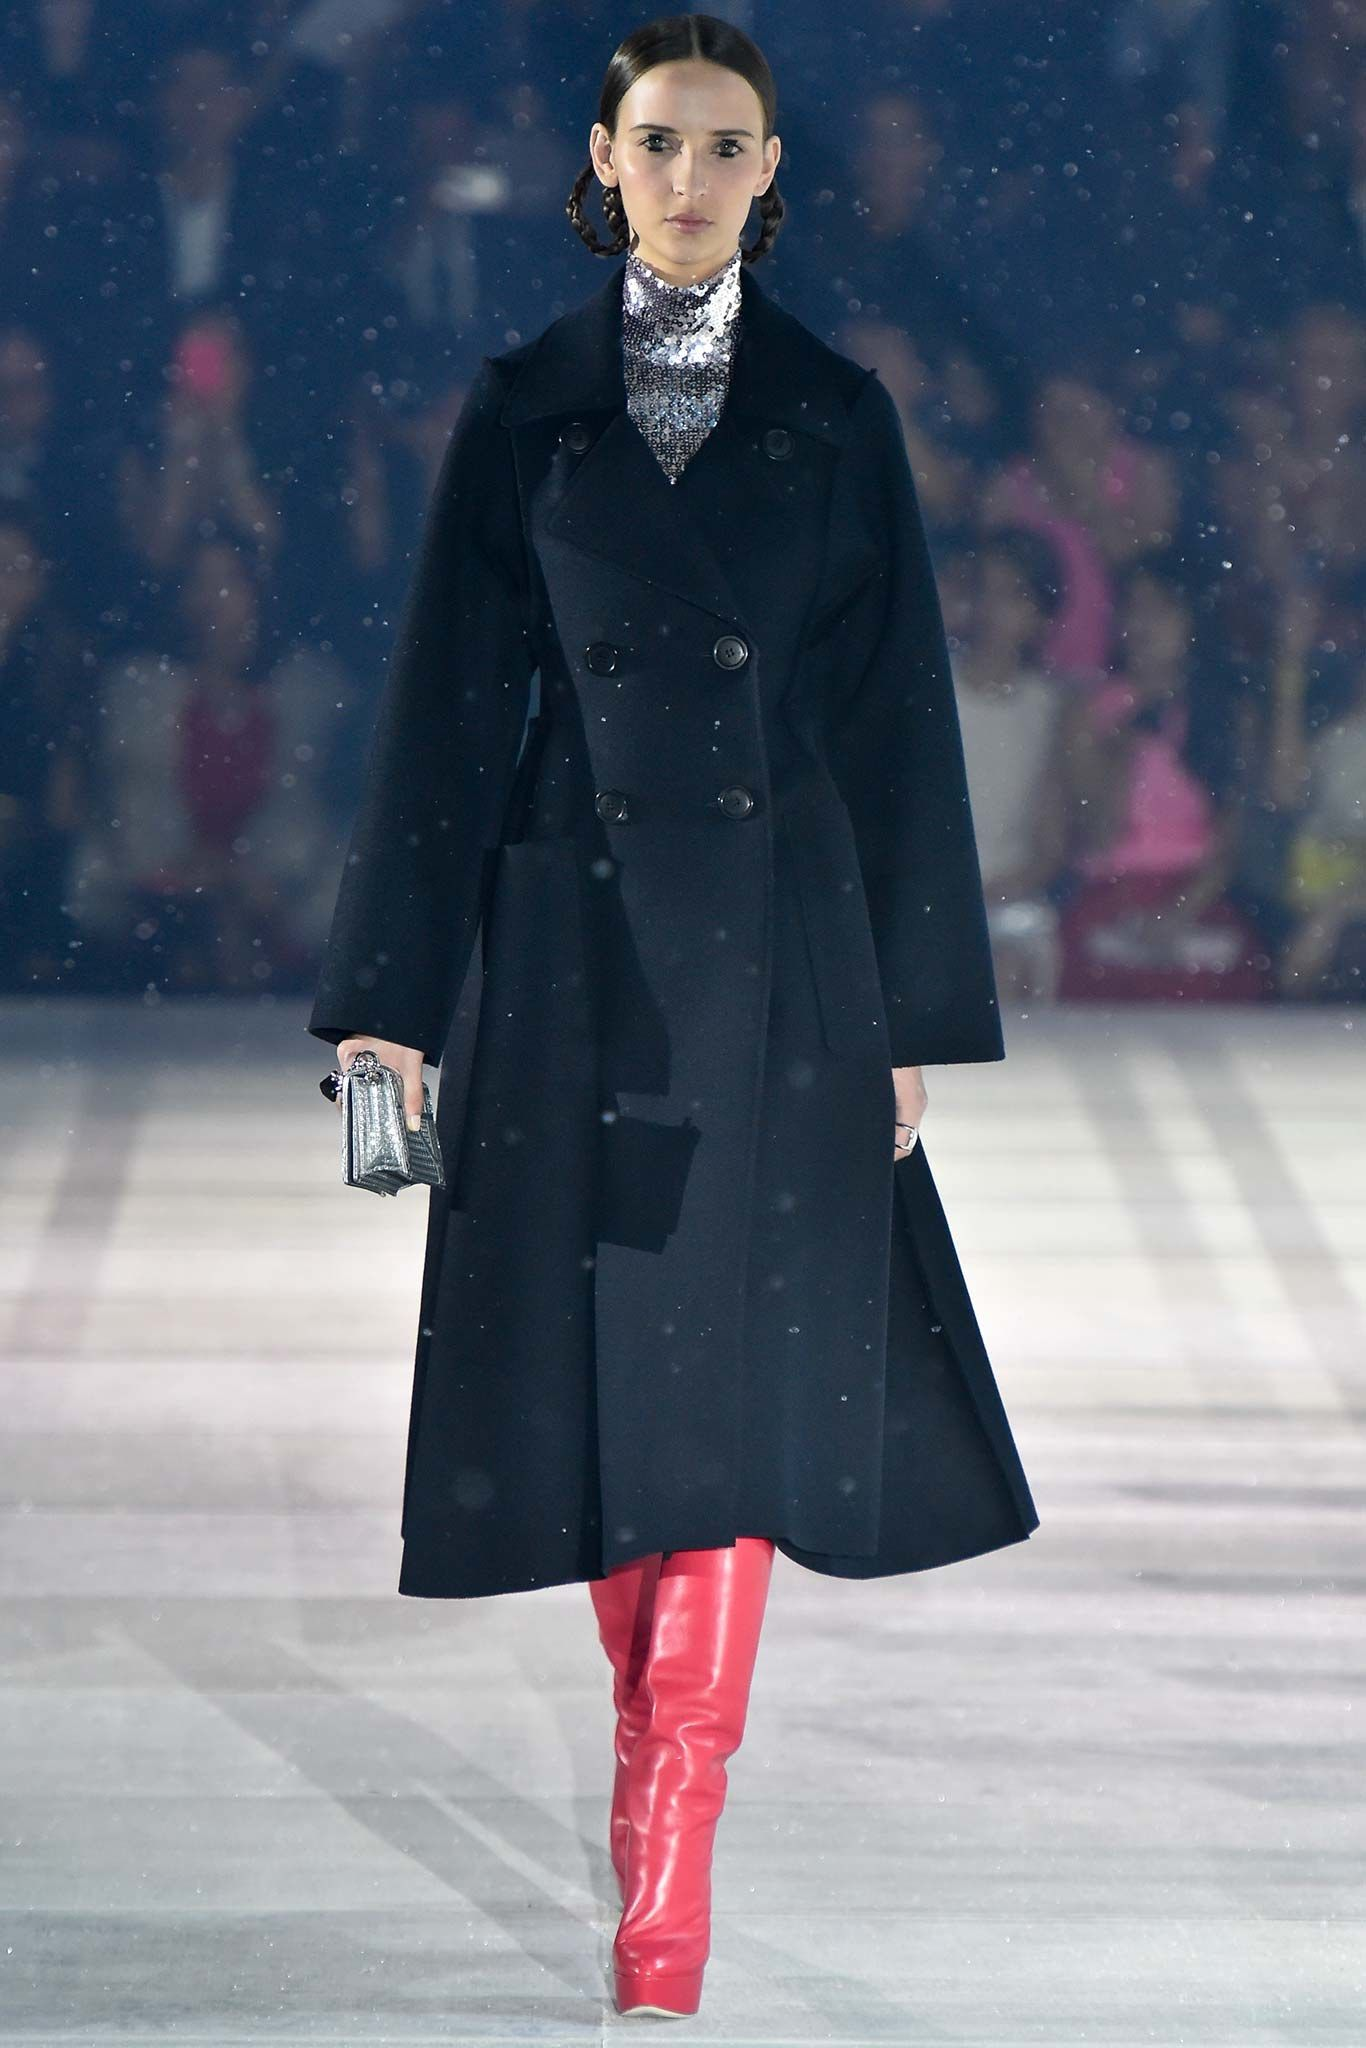 Christian Dior Pre-Fall 2015 Fashion Show - Waleska Gorczevski